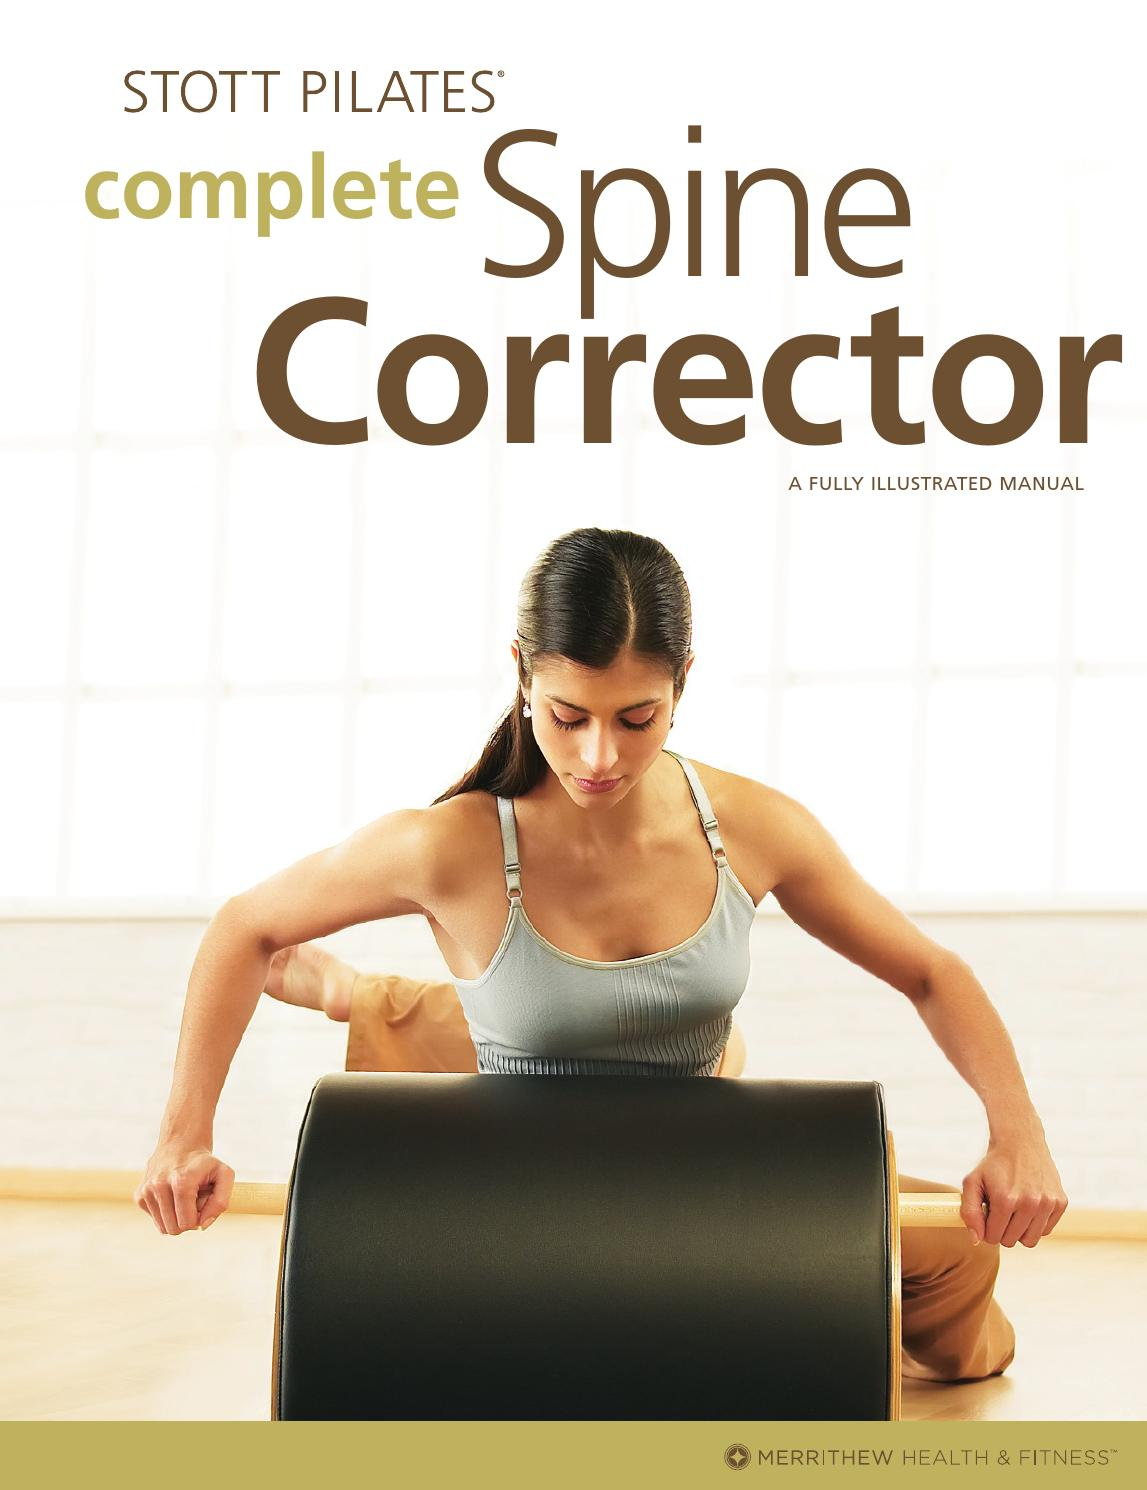 chair gym exercise book boys potty complete spine corrector sample by merrithew issuu